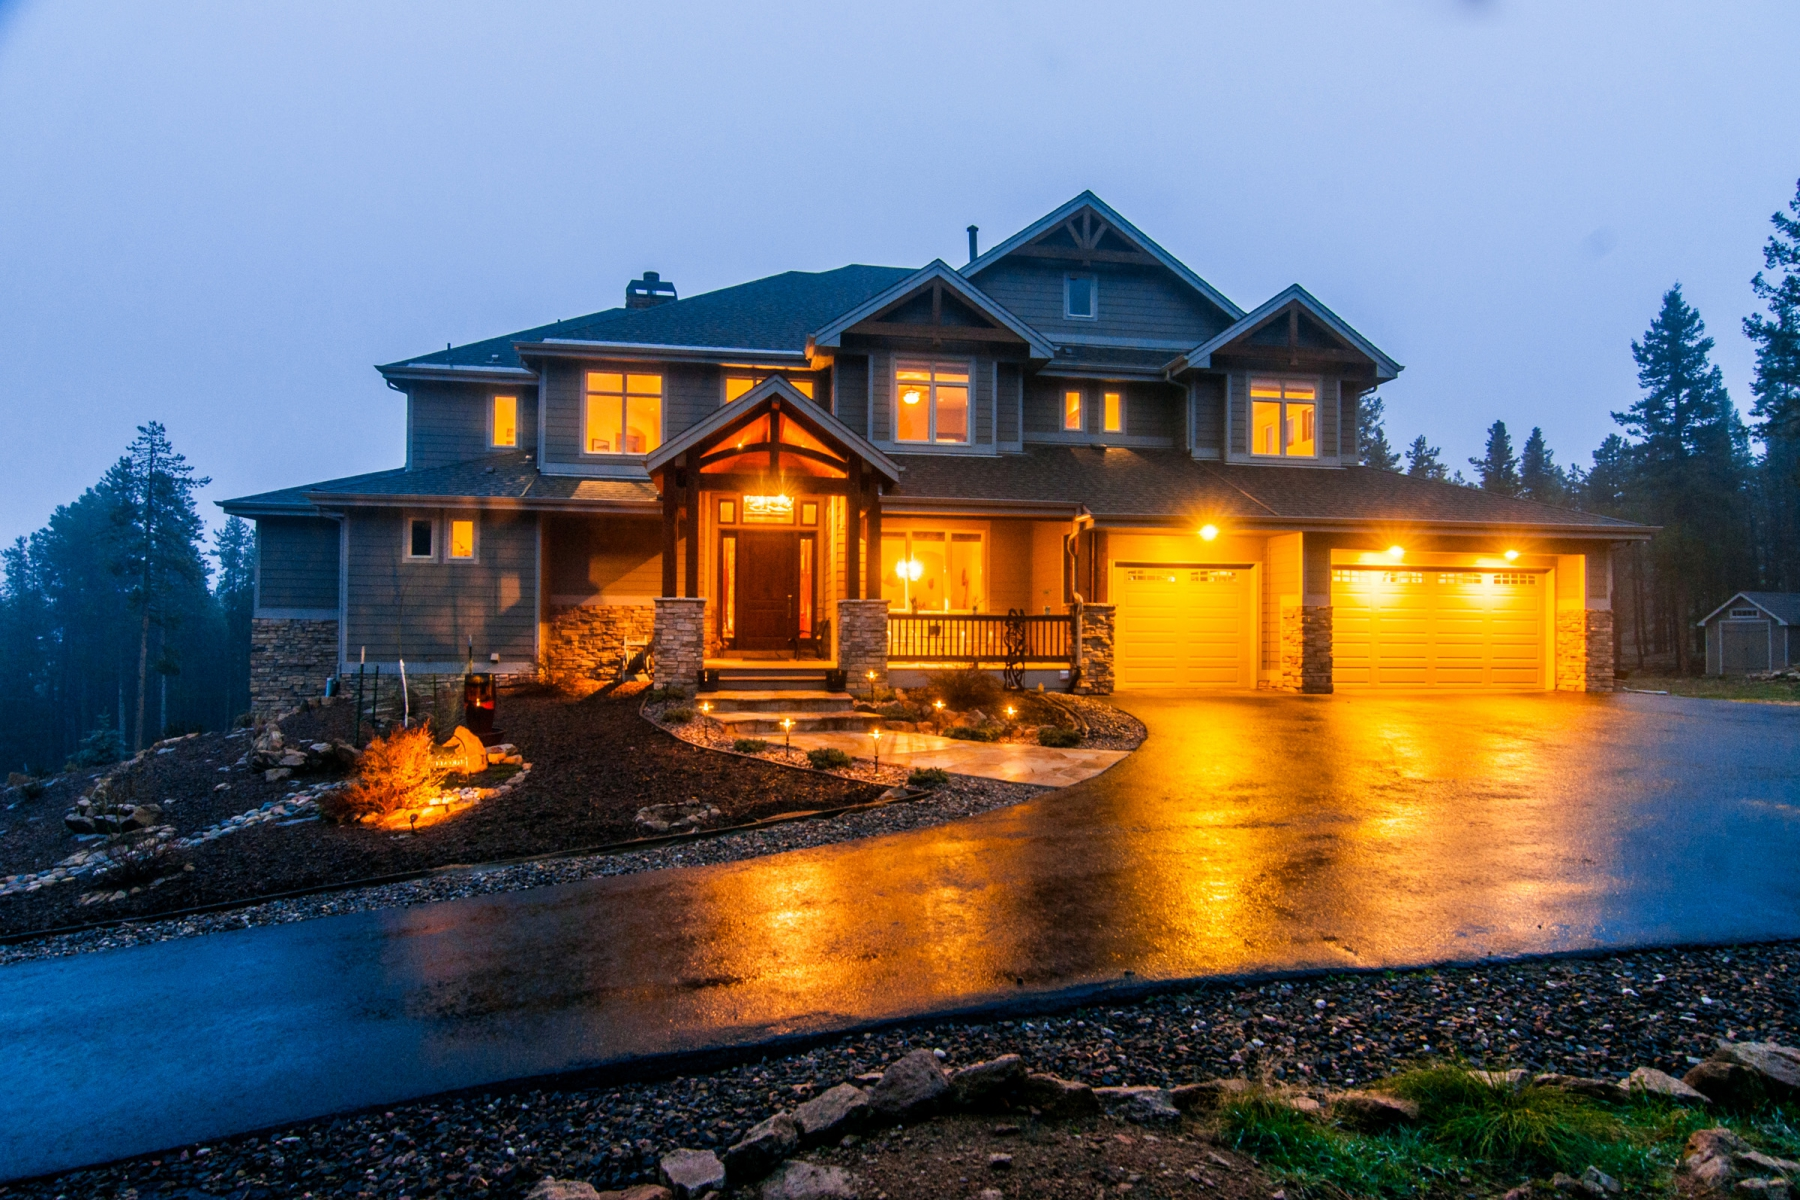 Single Family Home for Sale at Modern Living in Mountain Paradise 11391 Belle Meade Drive Conifer, Colorado 80433 United States